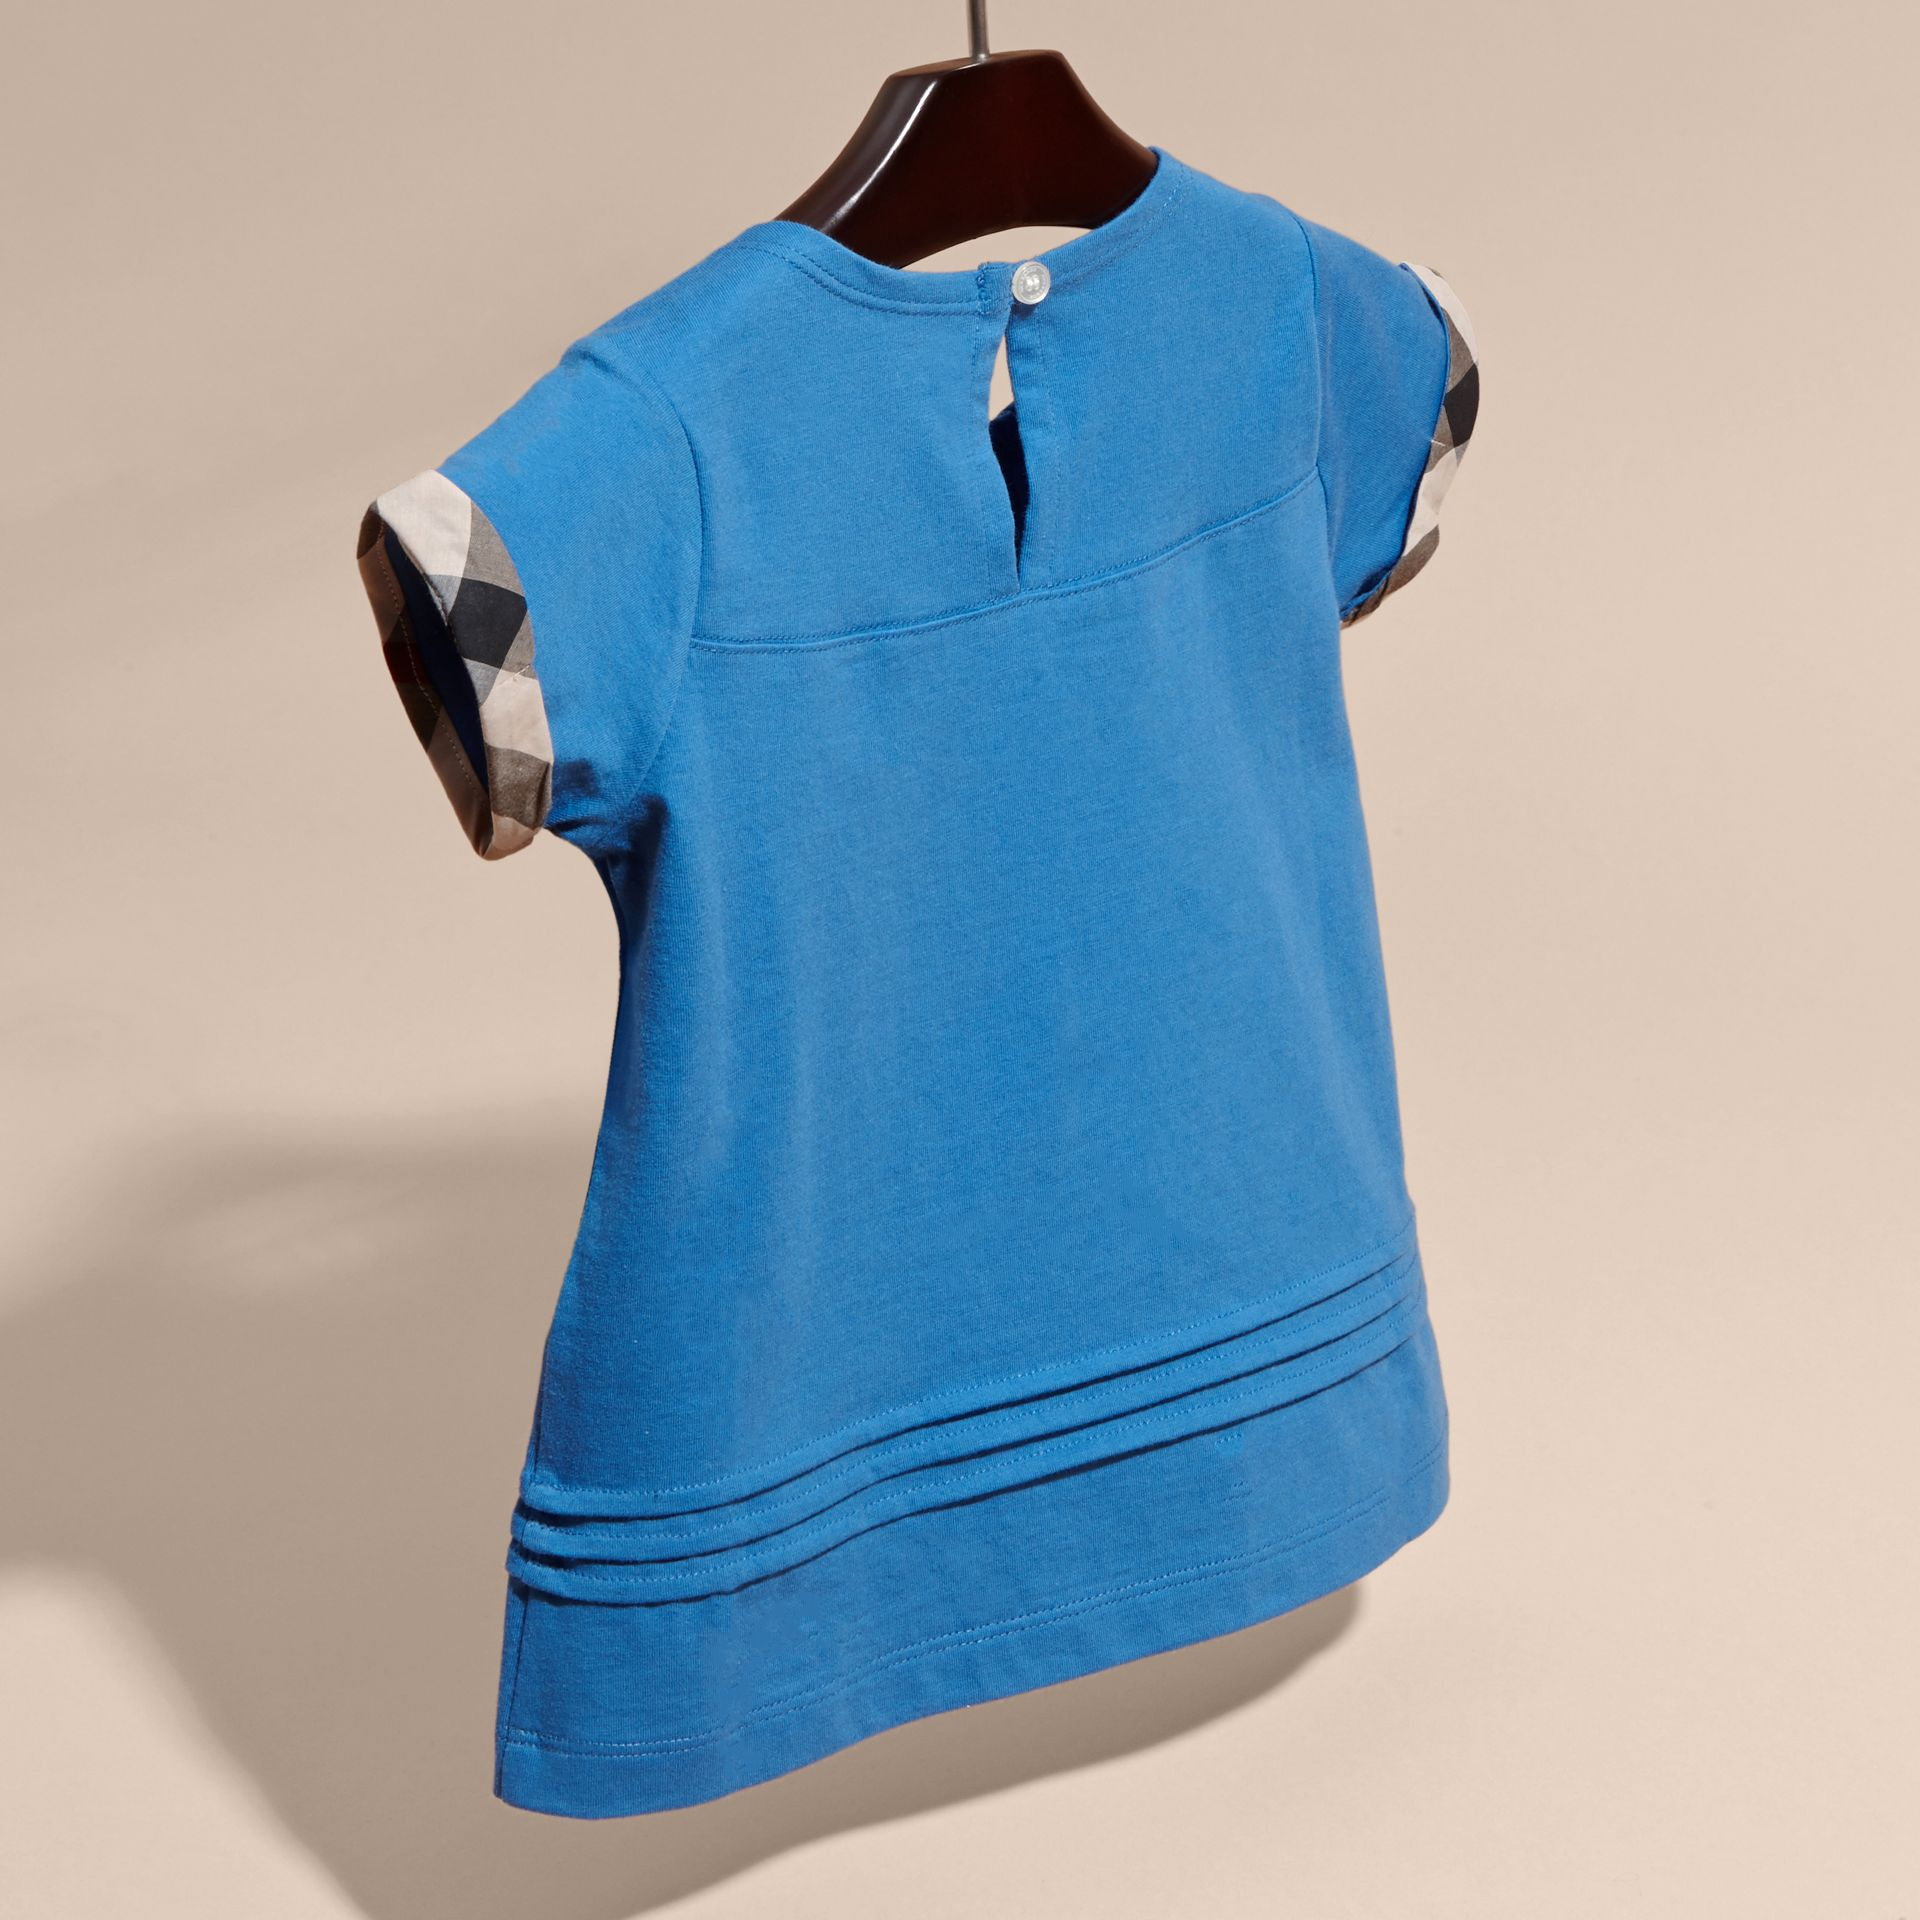 Pleat and Check Detail Cotton T-shirt Hydrangea Blue - gallery image 4